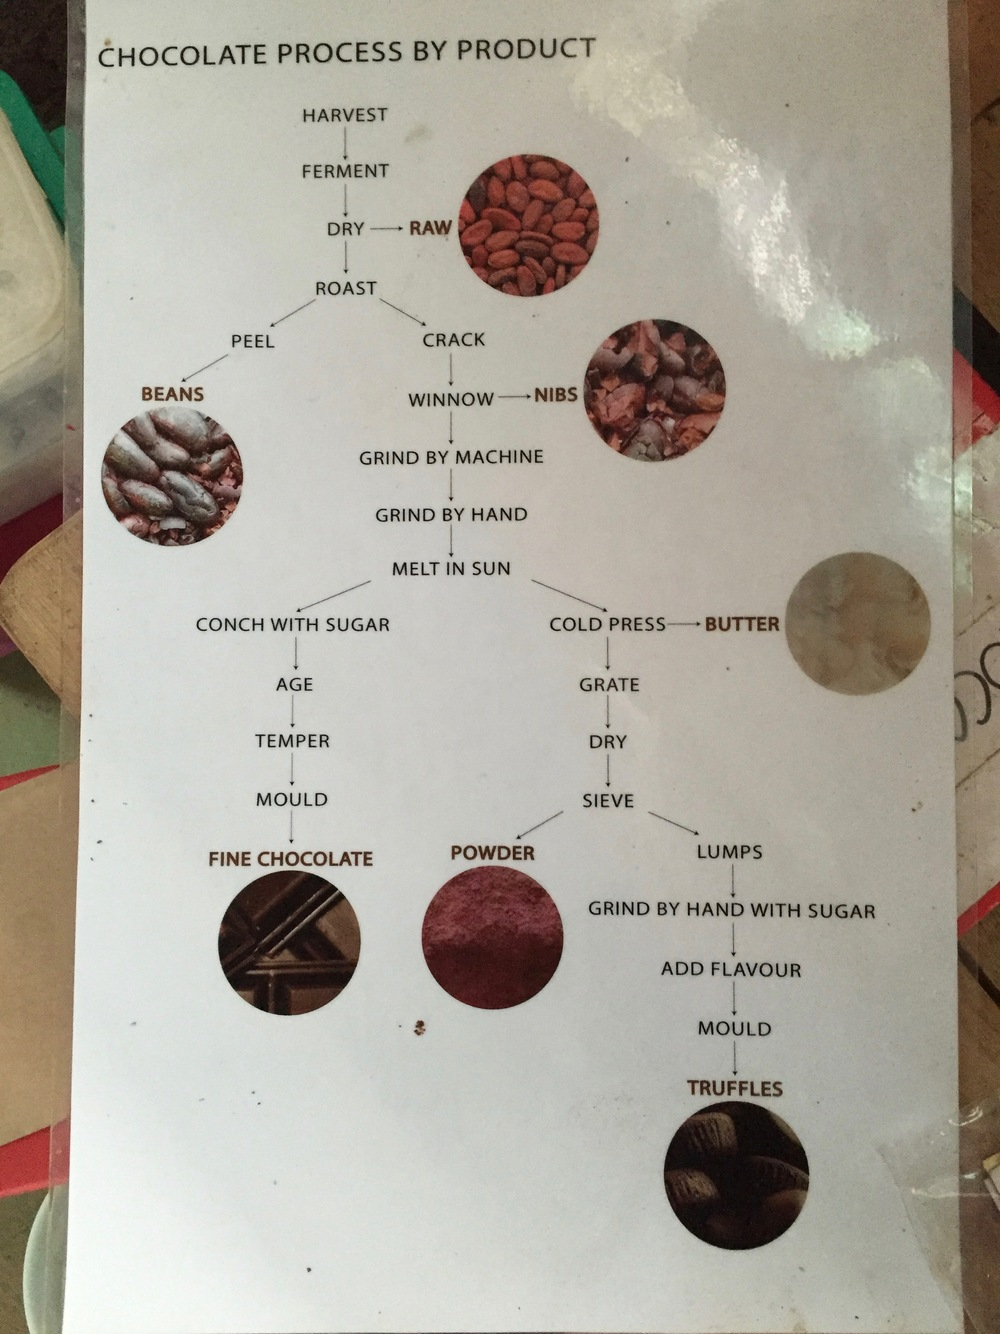 A diagram showing the different ways cacao beans can be processed